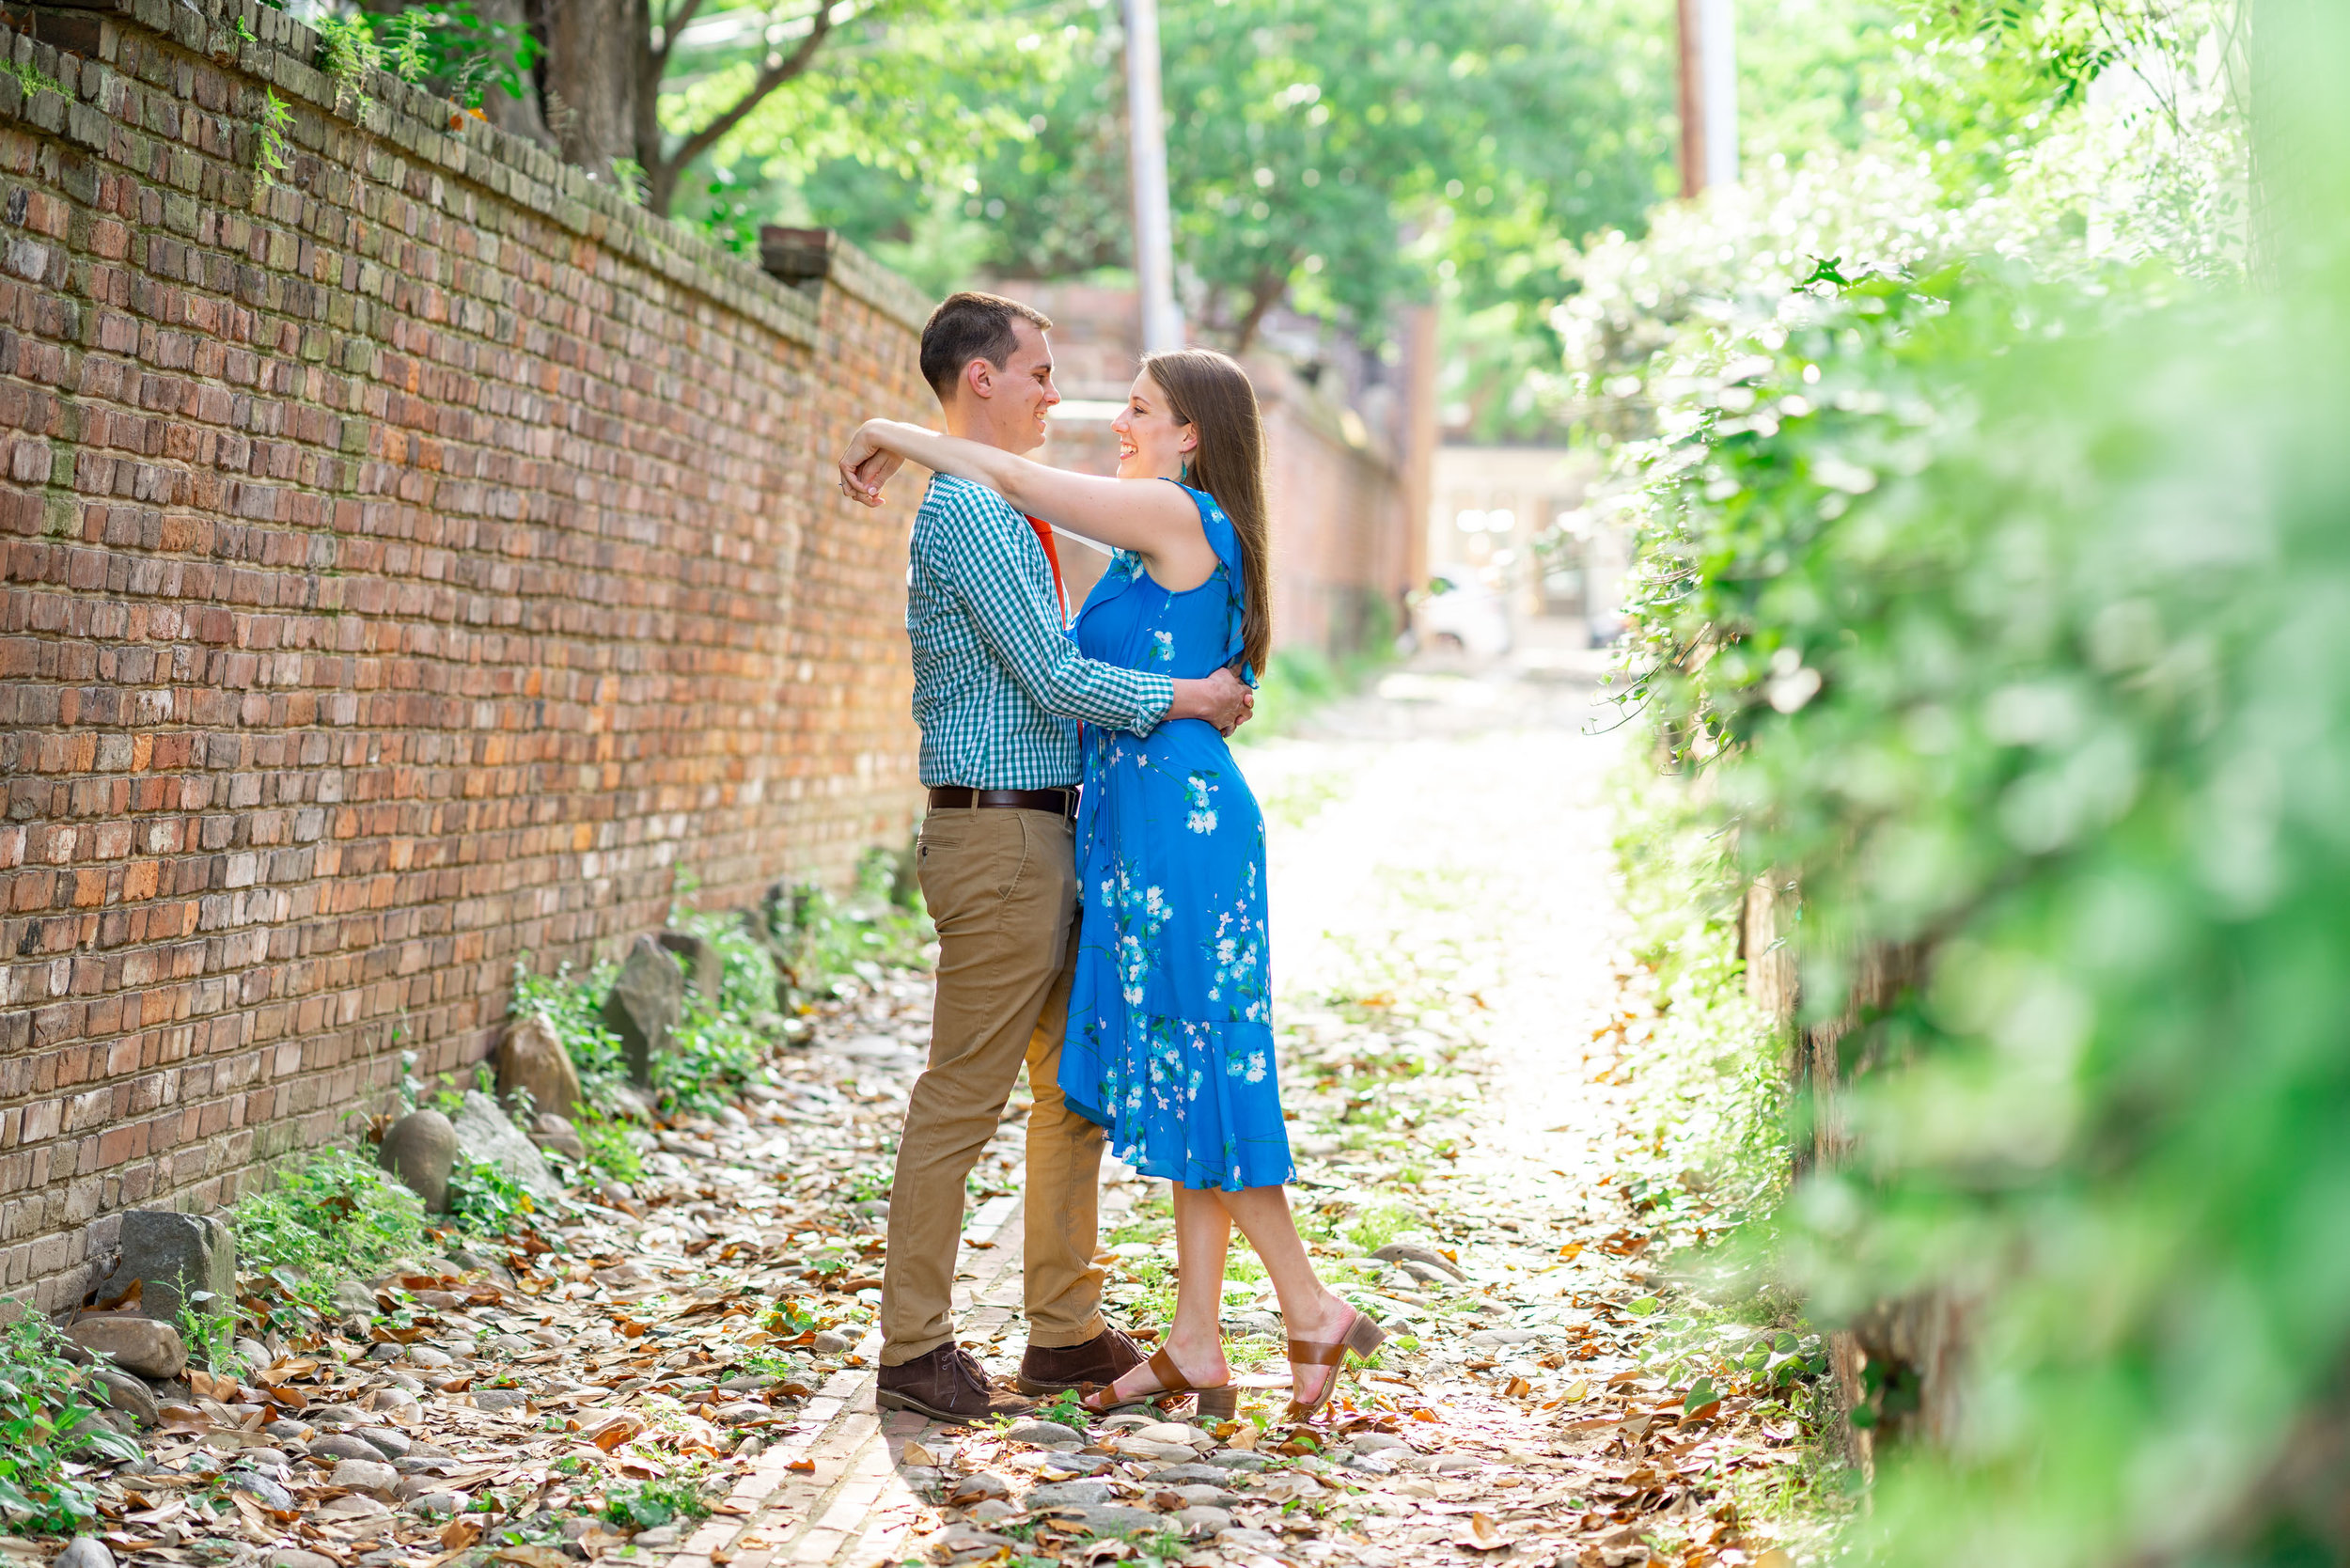 King Alley in old town alexandria engagement photo